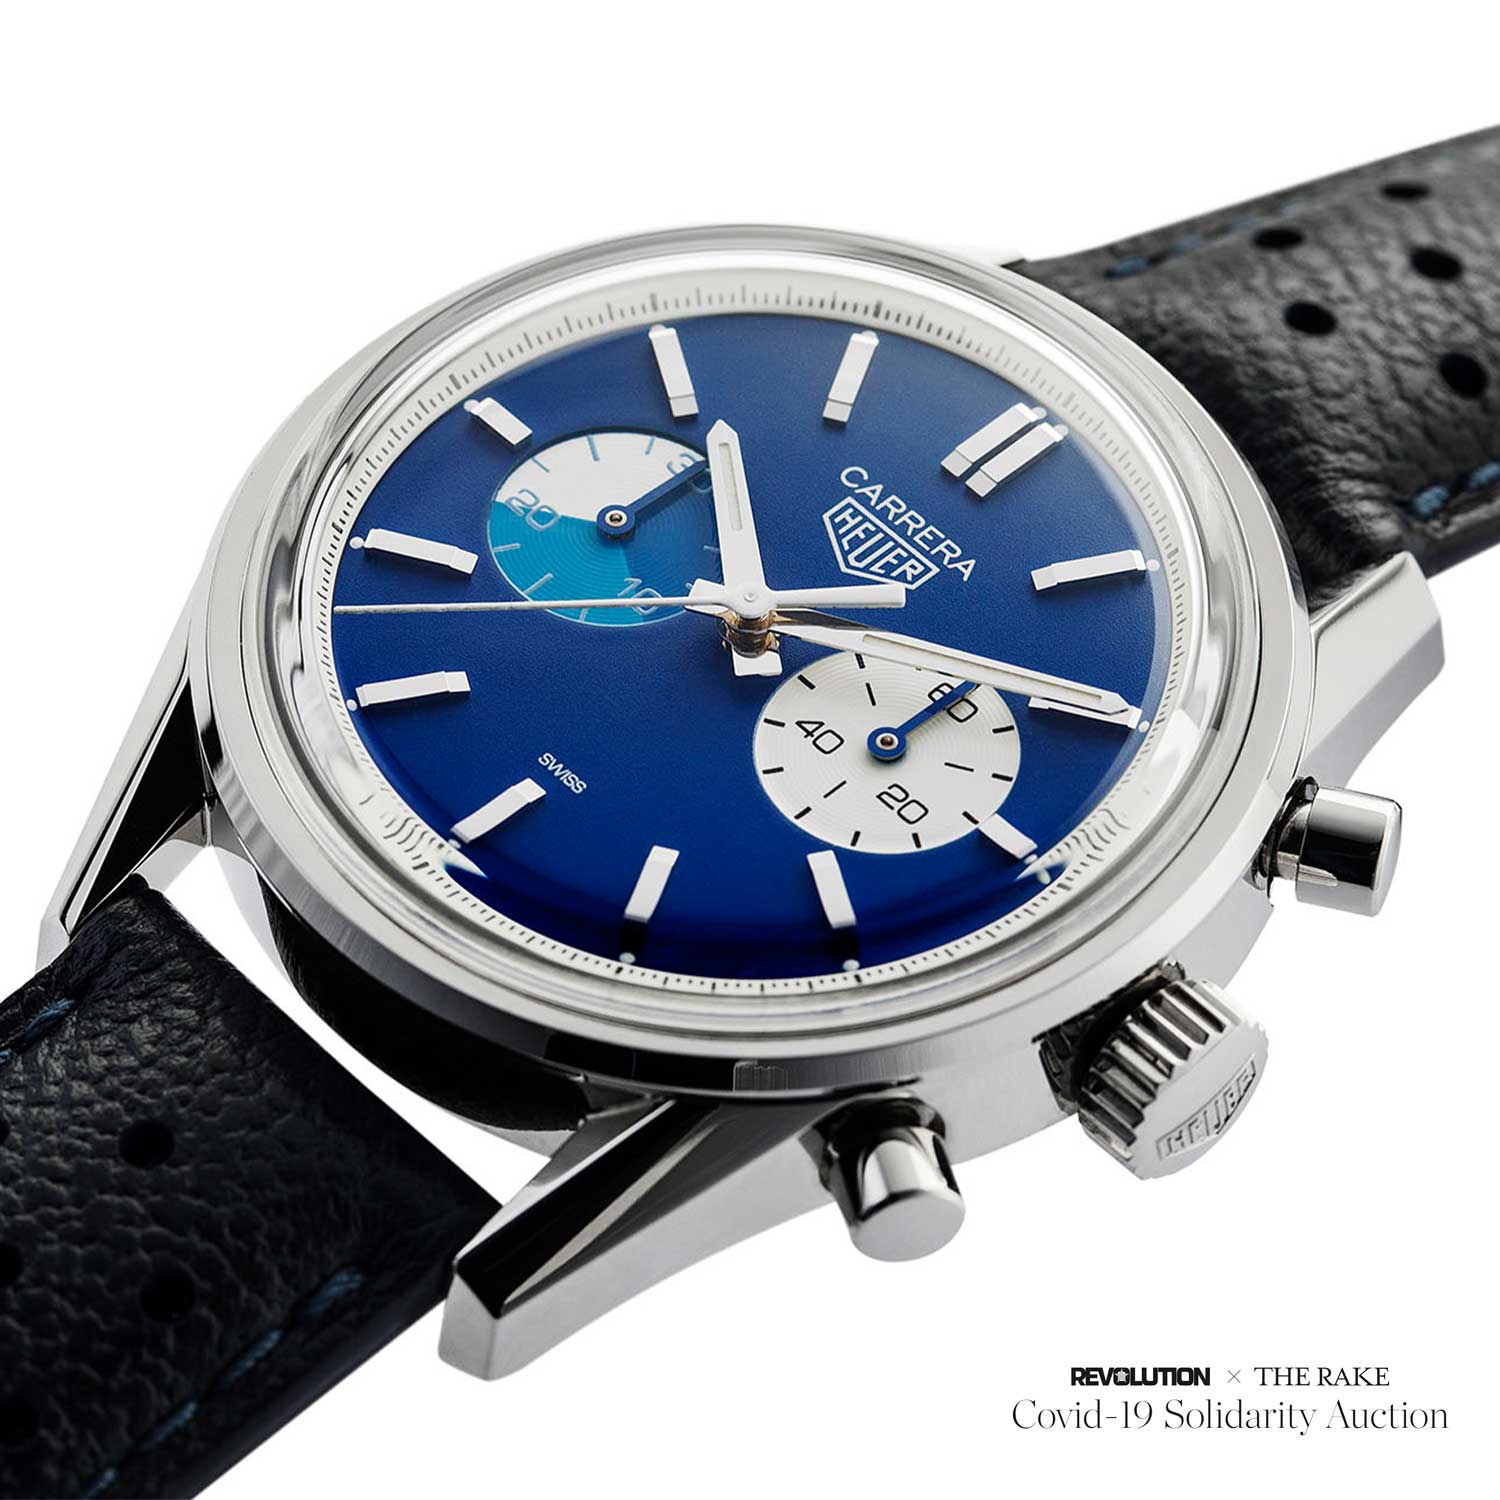 "Prototype of the Carrera Chronograph ""Blue Dreamer"" for Revolution x The Rake Covid-19 Solidarity Auction"